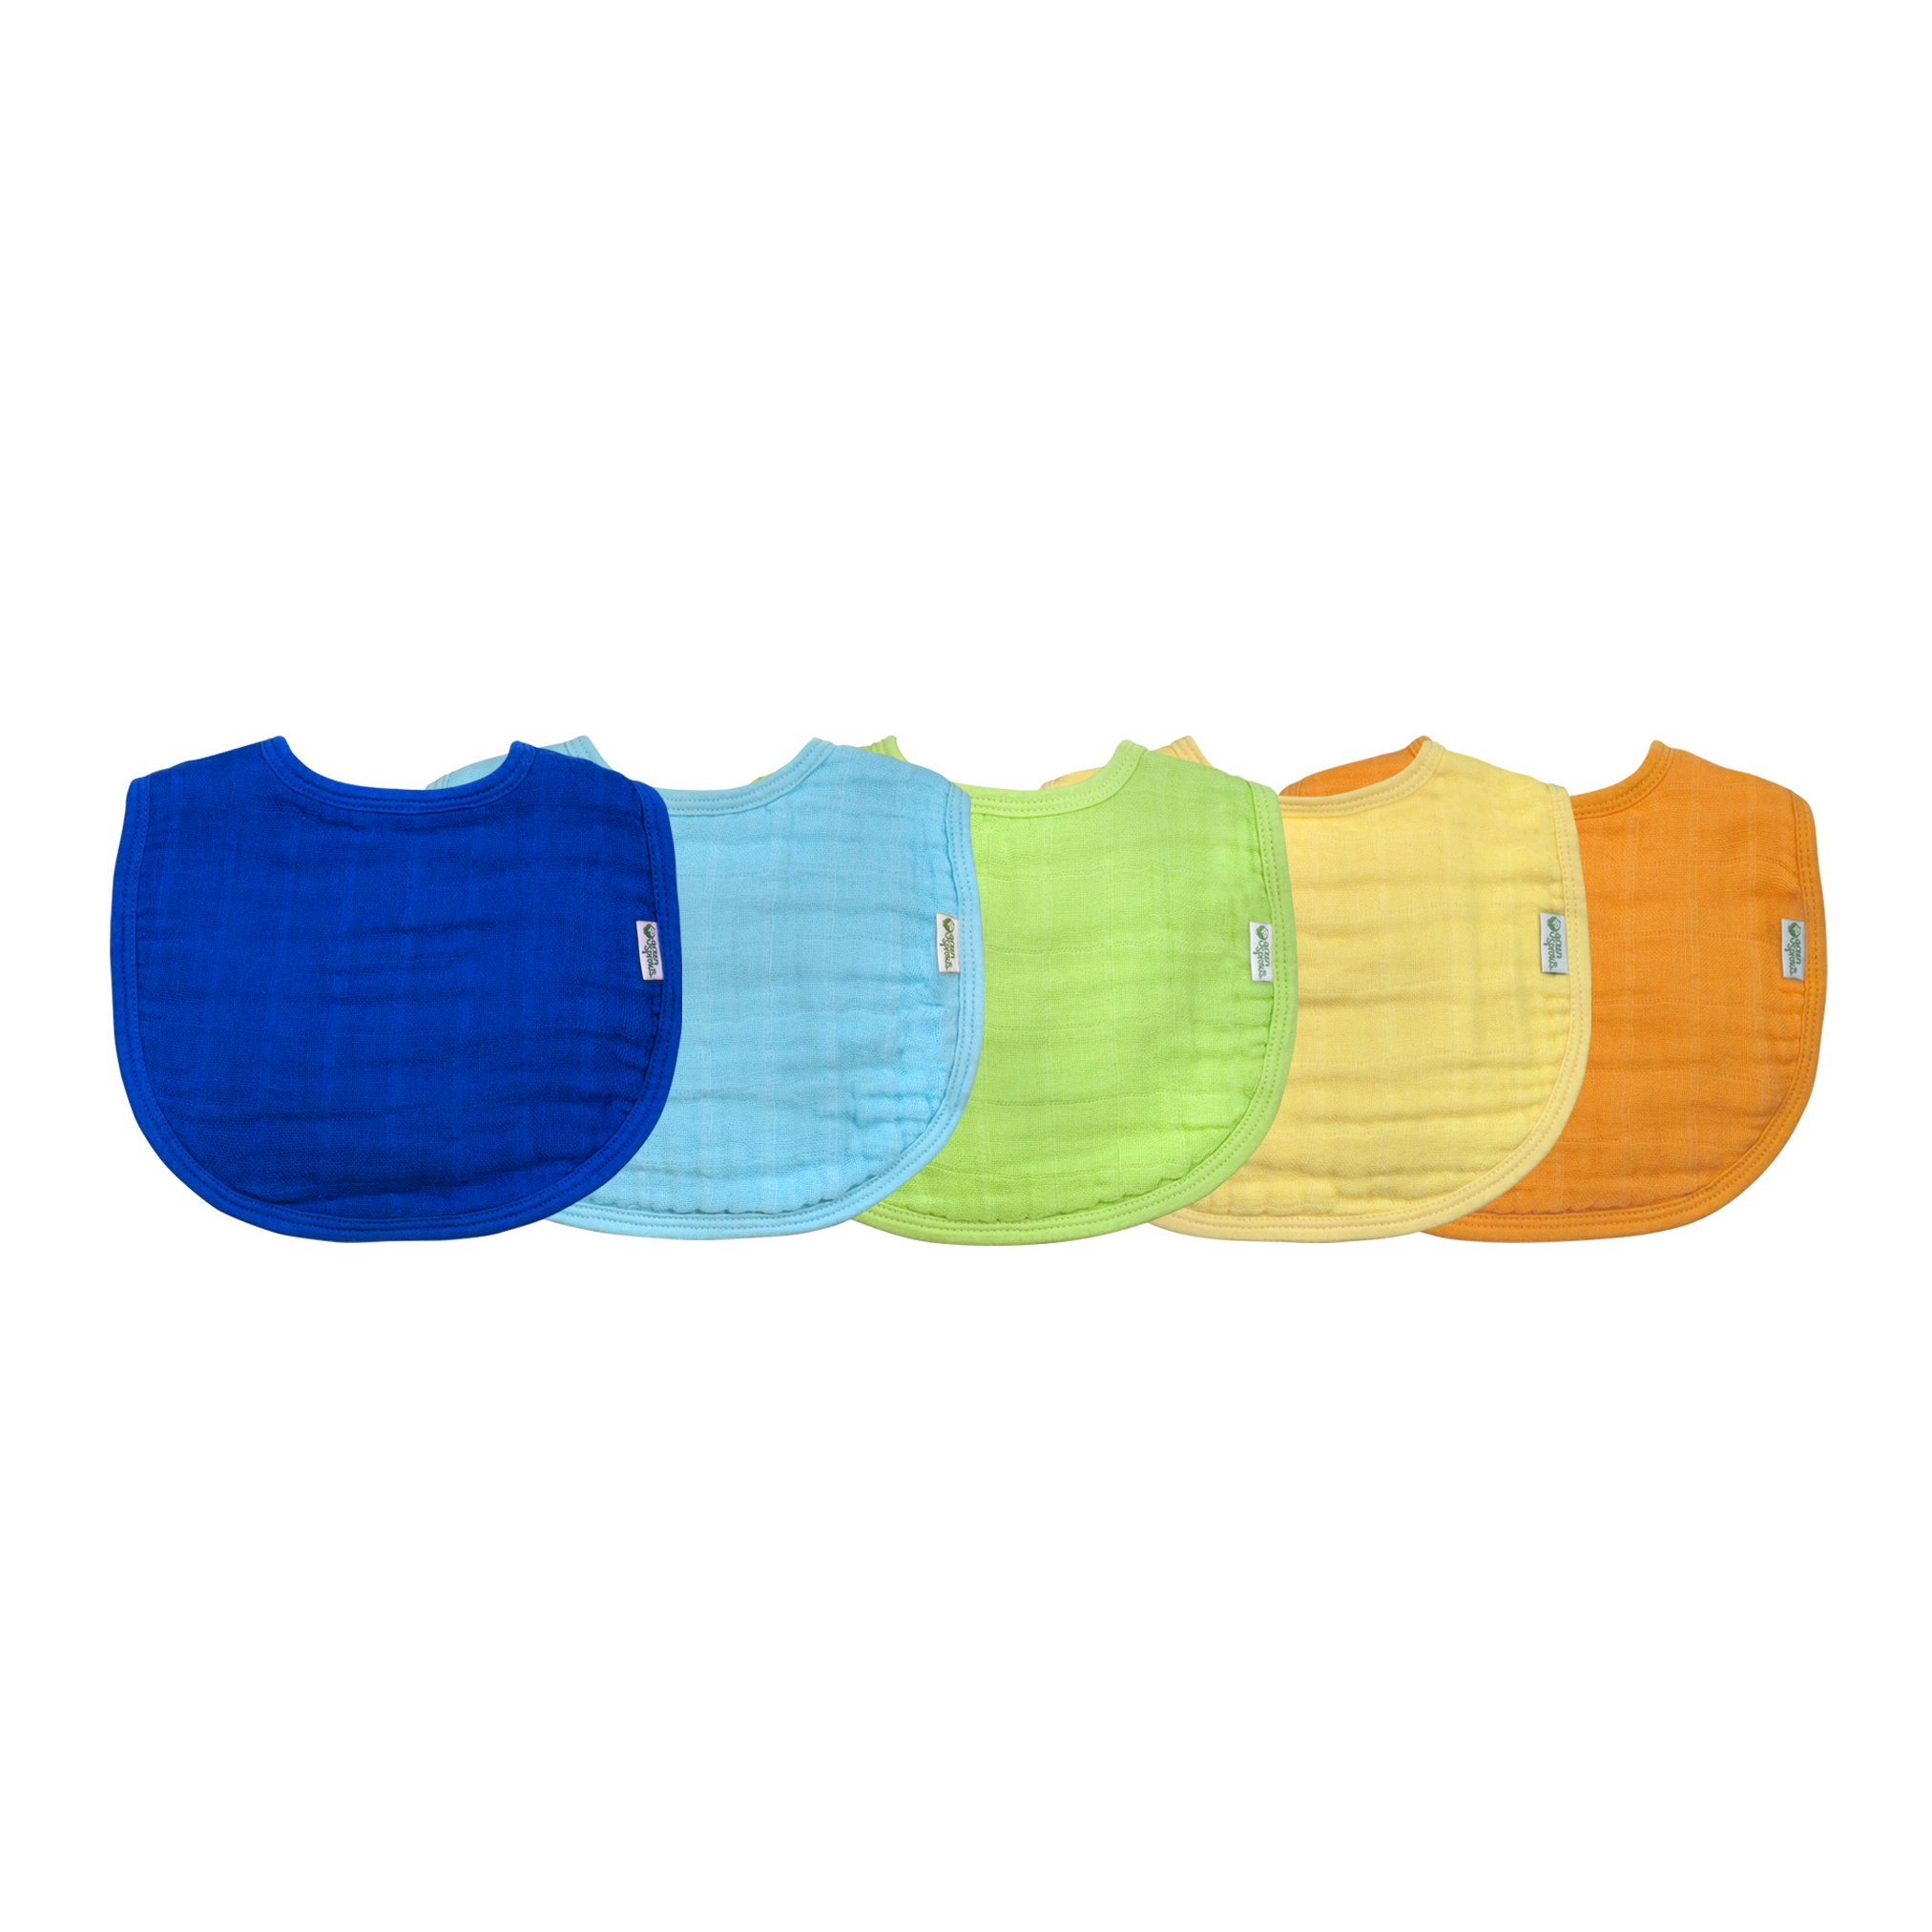 green sprouts Muslin Bibs made from Organic Cotton (5 pack)  4 absorbent layers protect from sniffles, drips, & drools   100% Organic cotton muslin, Adjustable snap closure, Machine washable